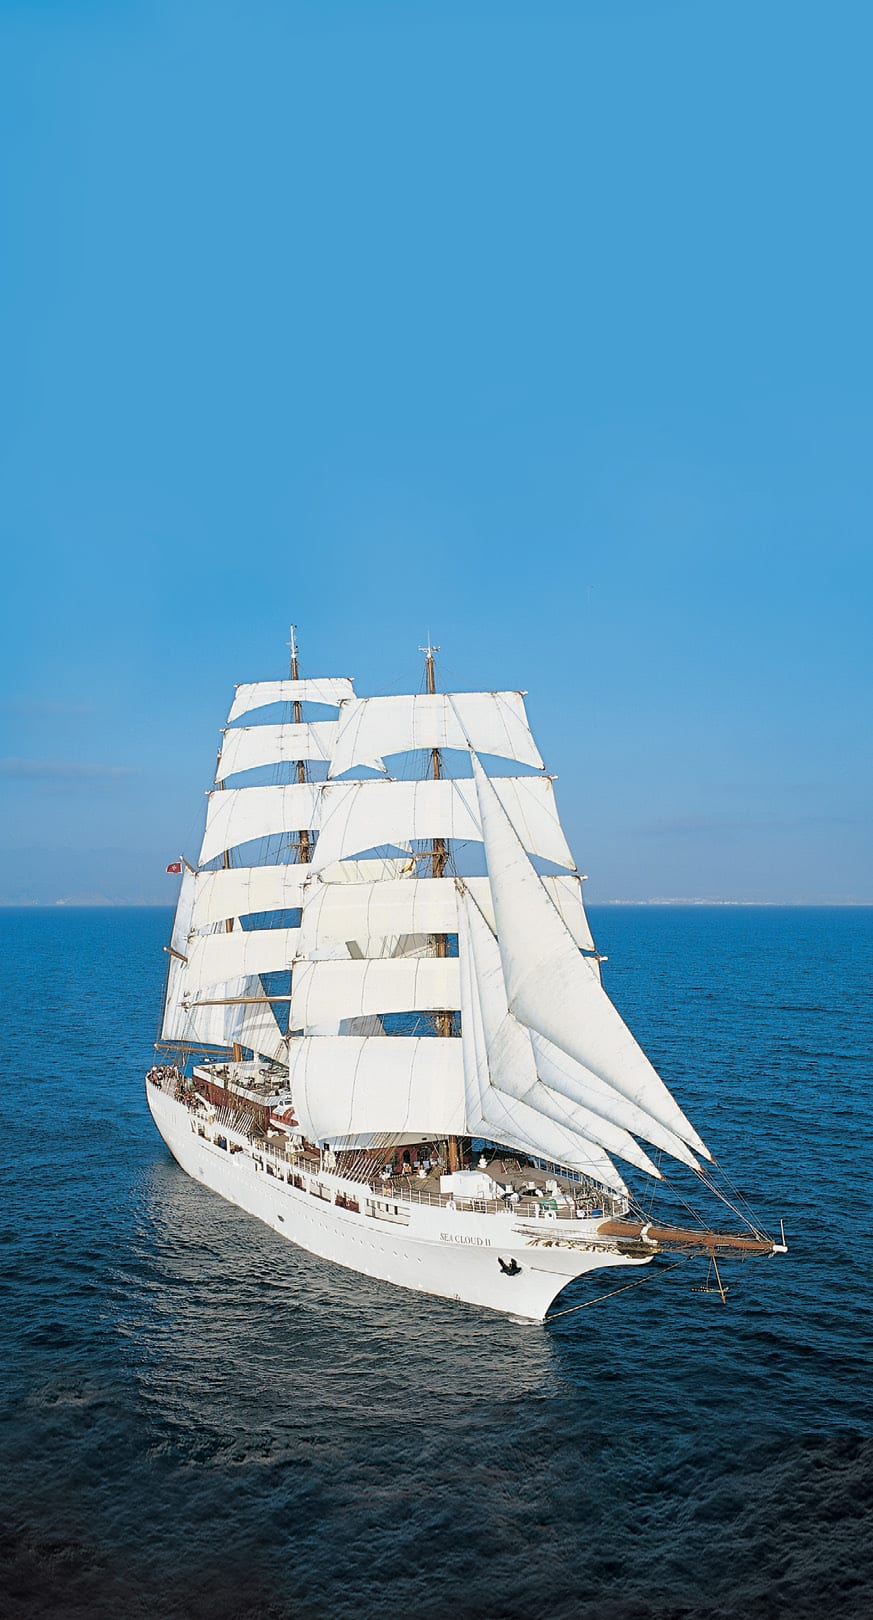 THE SEA CLOUD II